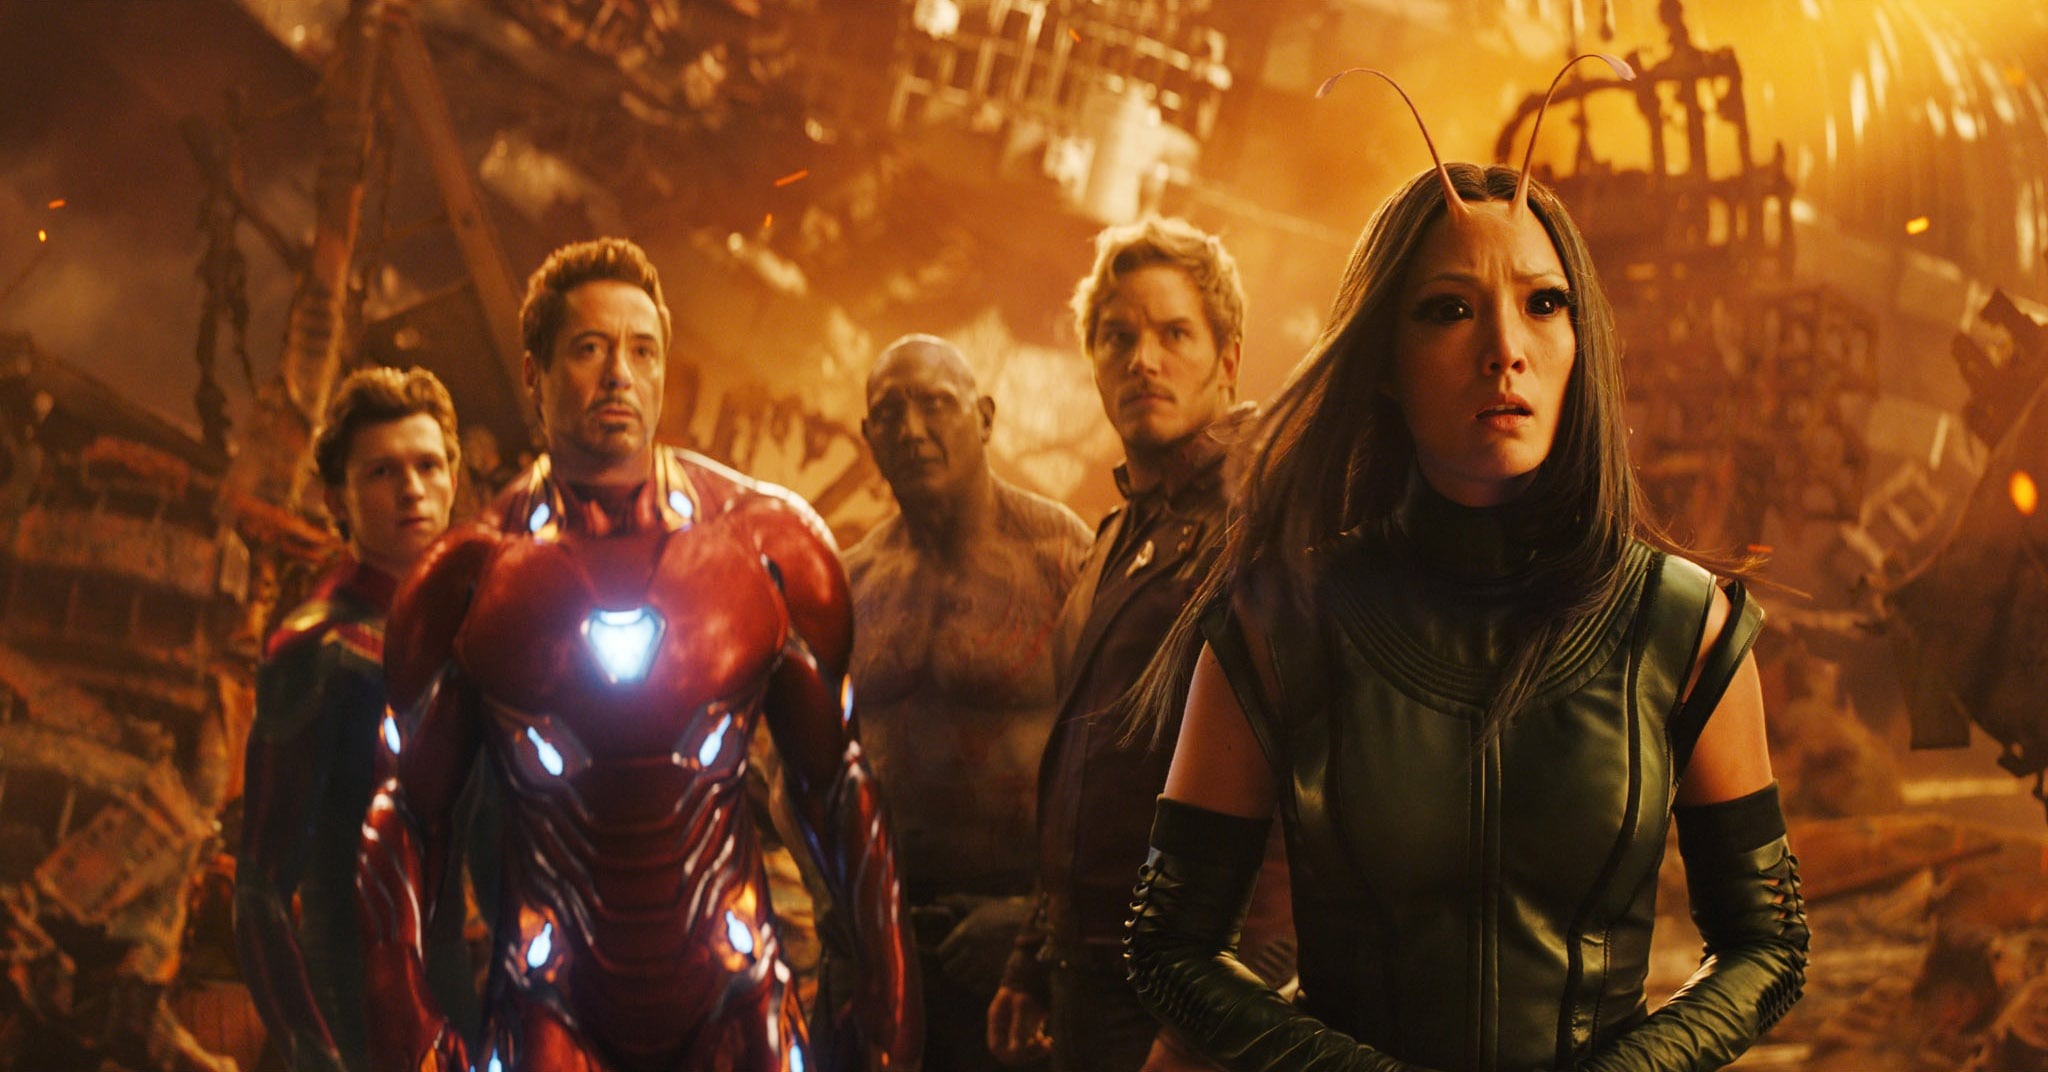 AVENGERS: INFINITY WAR, from left: Tom Holland as Spider-Man, Robert Downey Jr. as Iron Man, Dave Bautista as Drax, Chris Pratt as Peter Quill, Pom Klementieff as Mantis, 2018.  Marvel/  Walt Disney Studios Motion Pictures /Courtesy Everett Collection